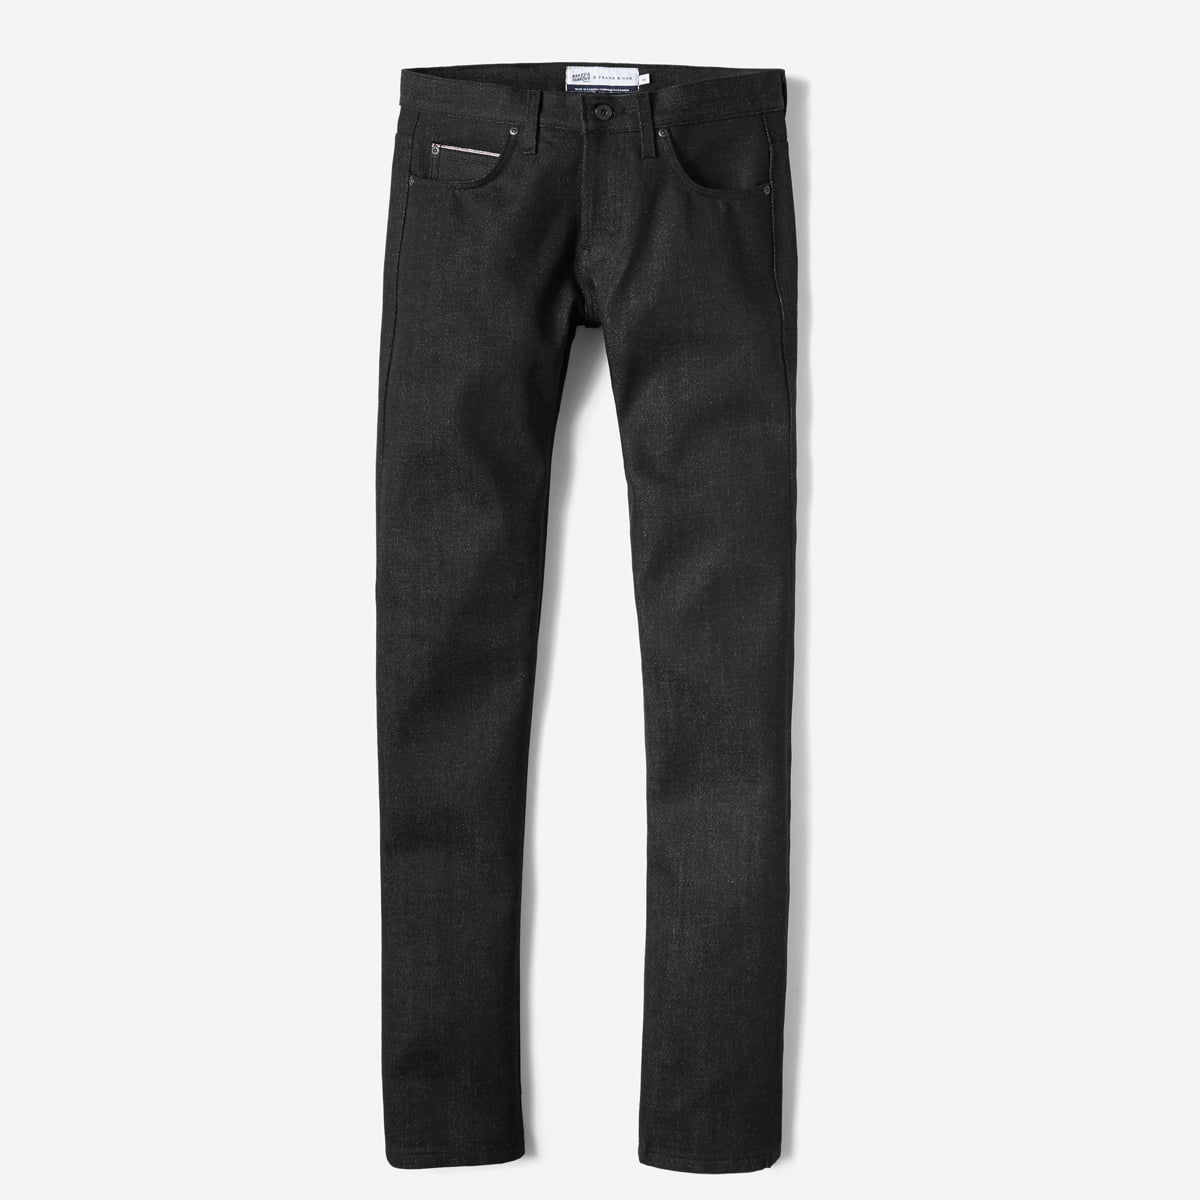 Naked & Famous x Frank & Oak Tapered Selvedge Denim in Black